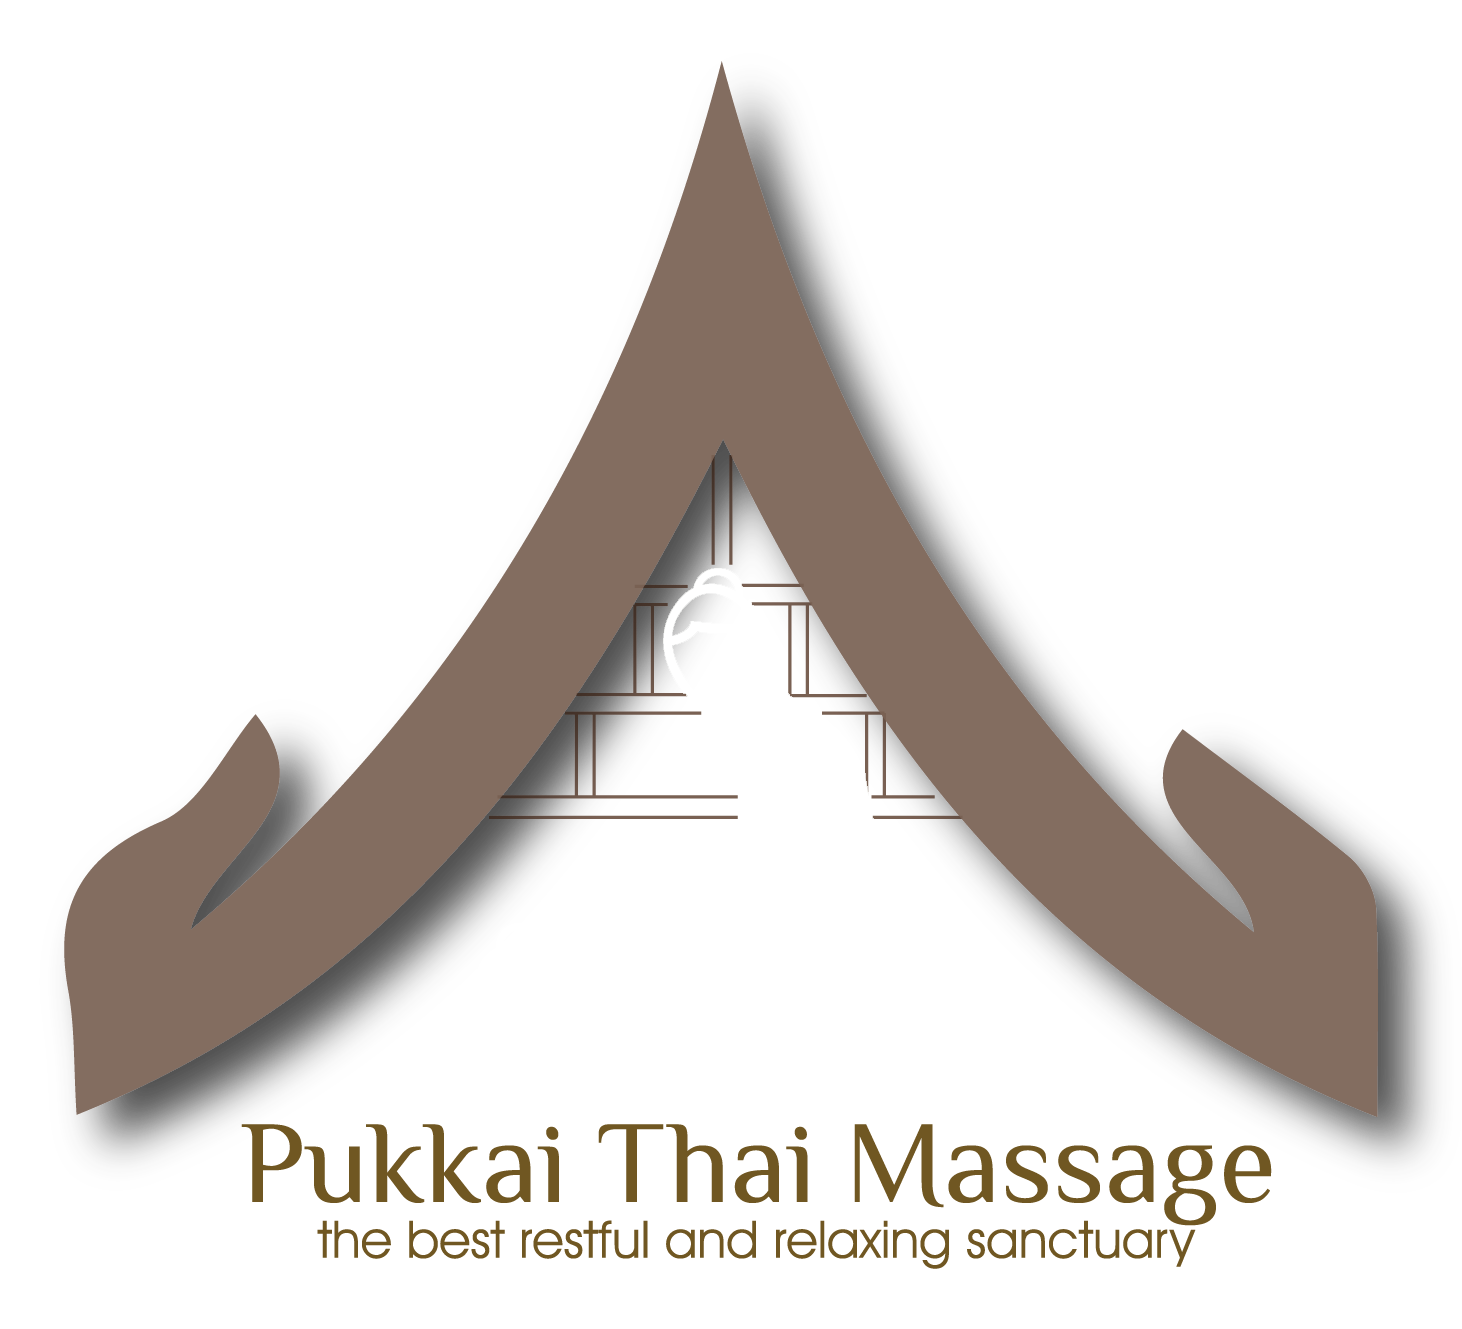 home_massage_home_icon_3